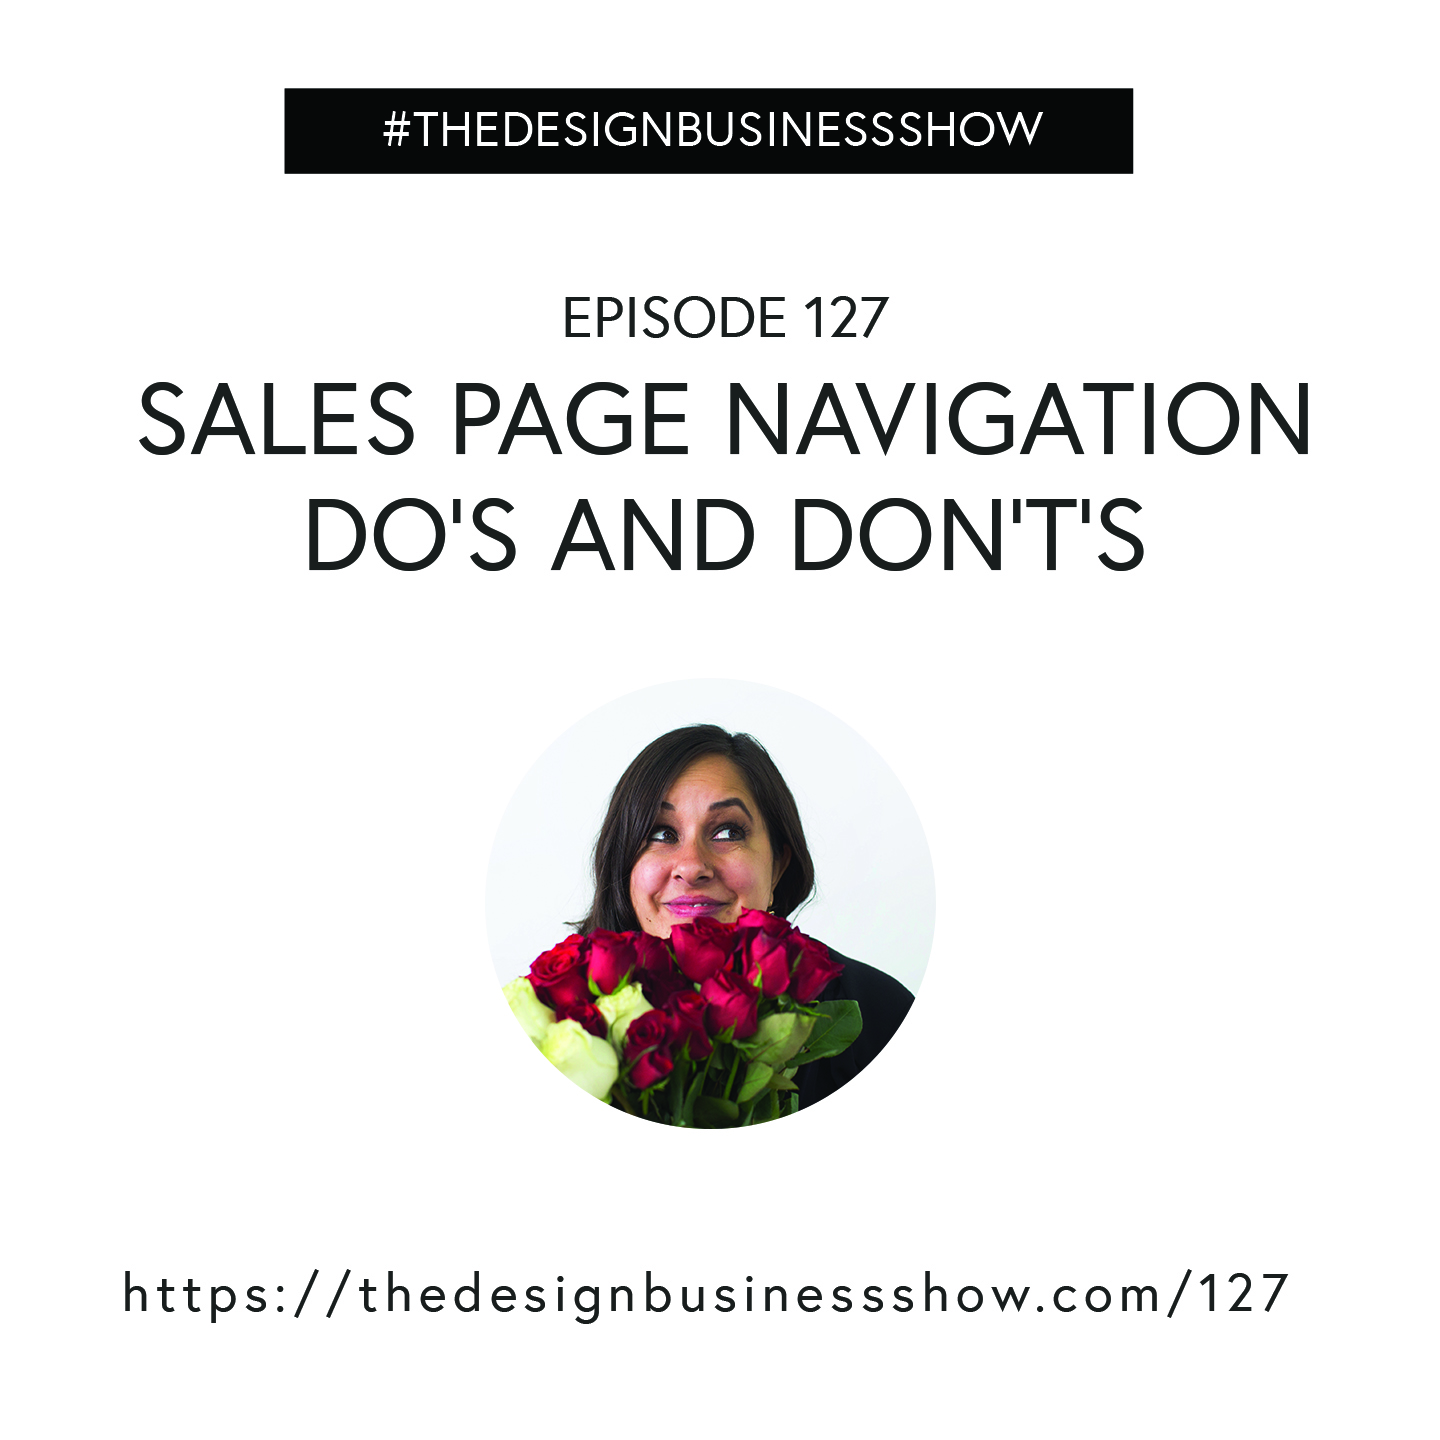 Check out episode 127 of The Design Business Show to learn sales page navigation do's and don'ts!